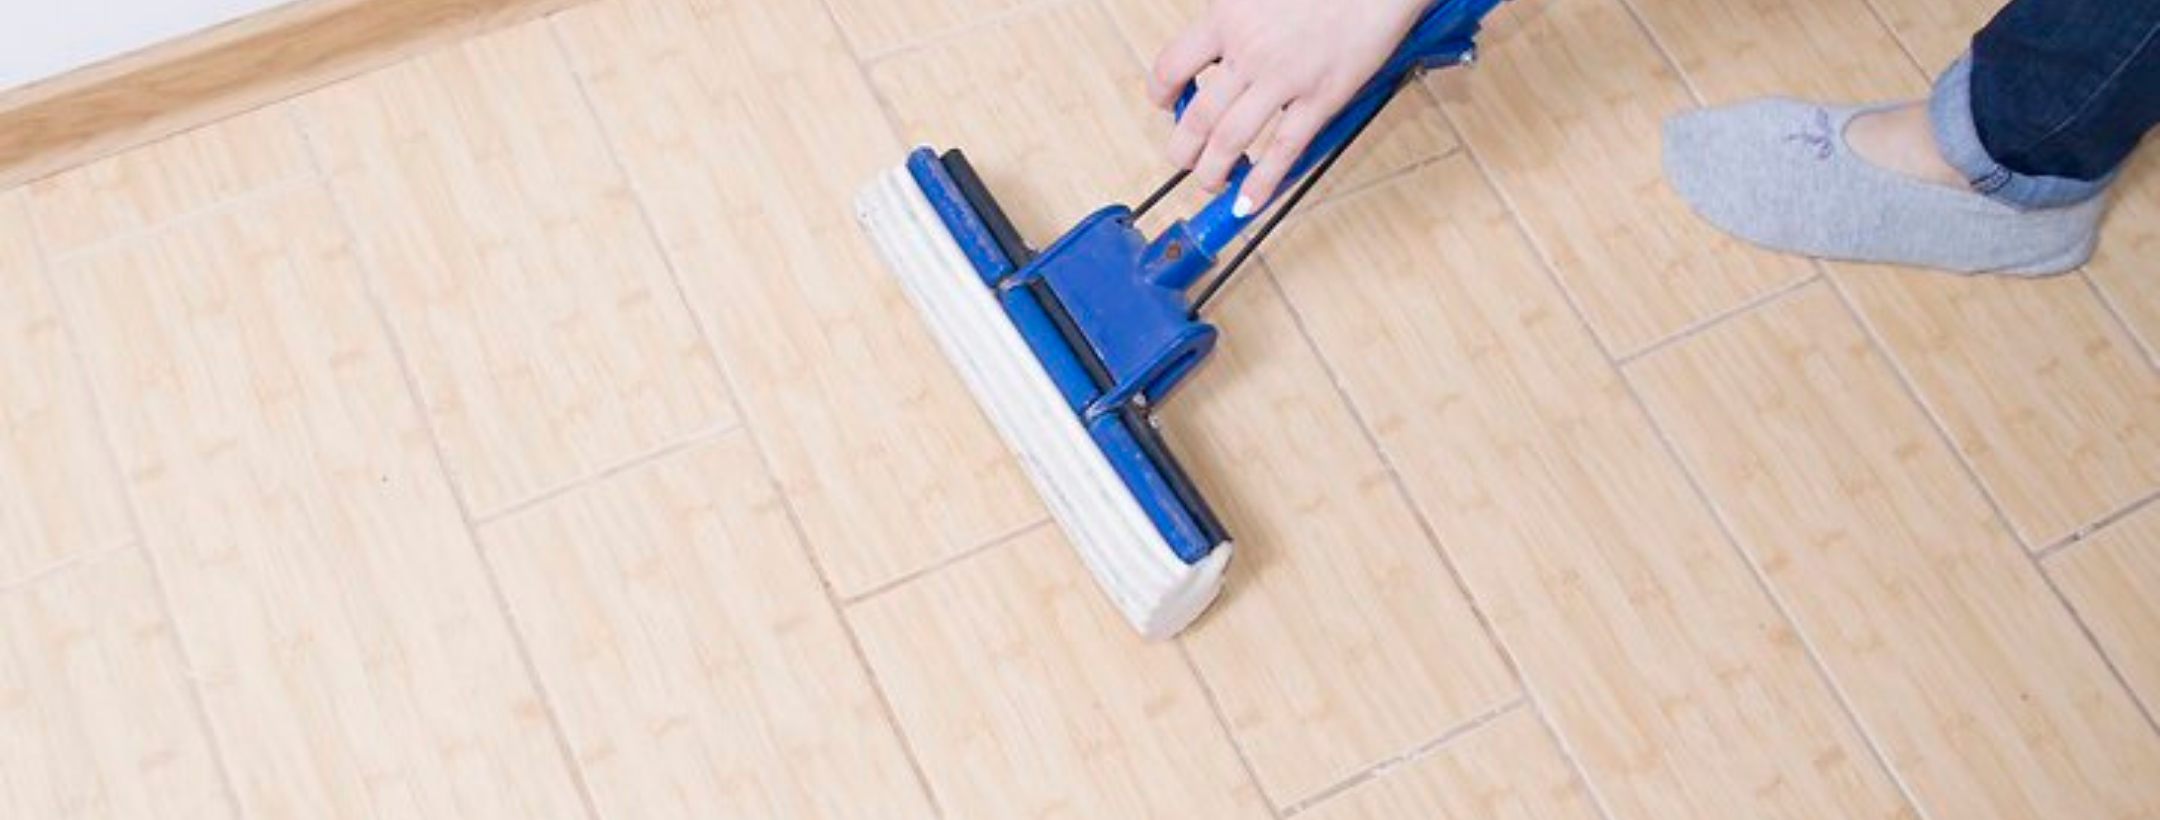 How To Clean Up Your Flooded Cary Basement Flood Restoration Wet Dry Vacuum Cleaning